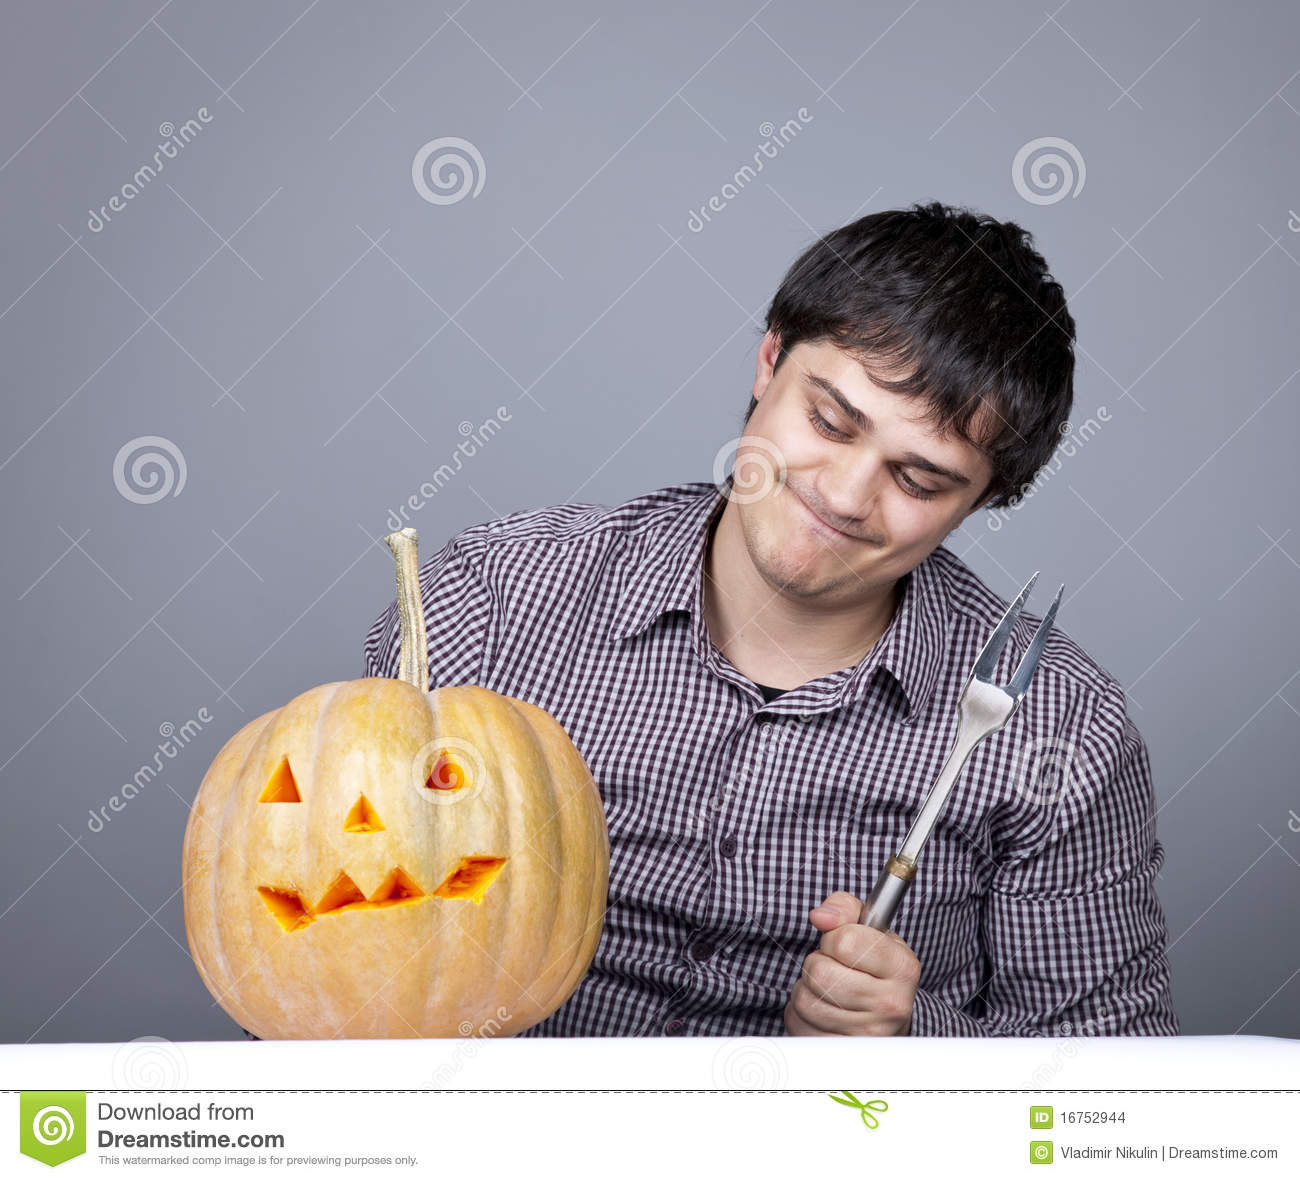 Funny men with fork try to eat a pumpkin.